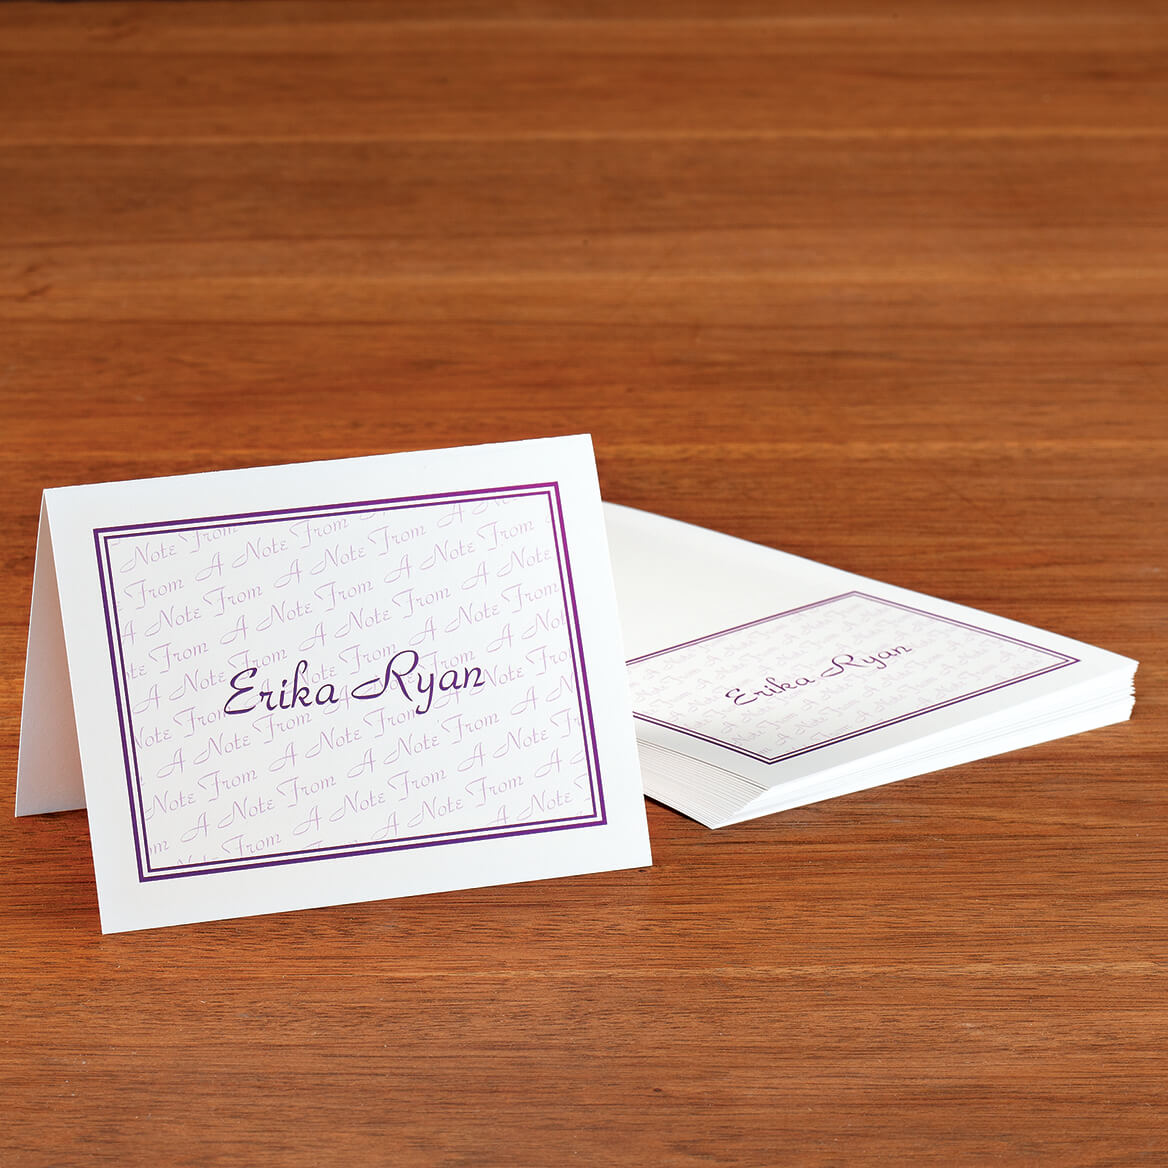 Personalized A Note From Note Cards Bright set of 20-370804